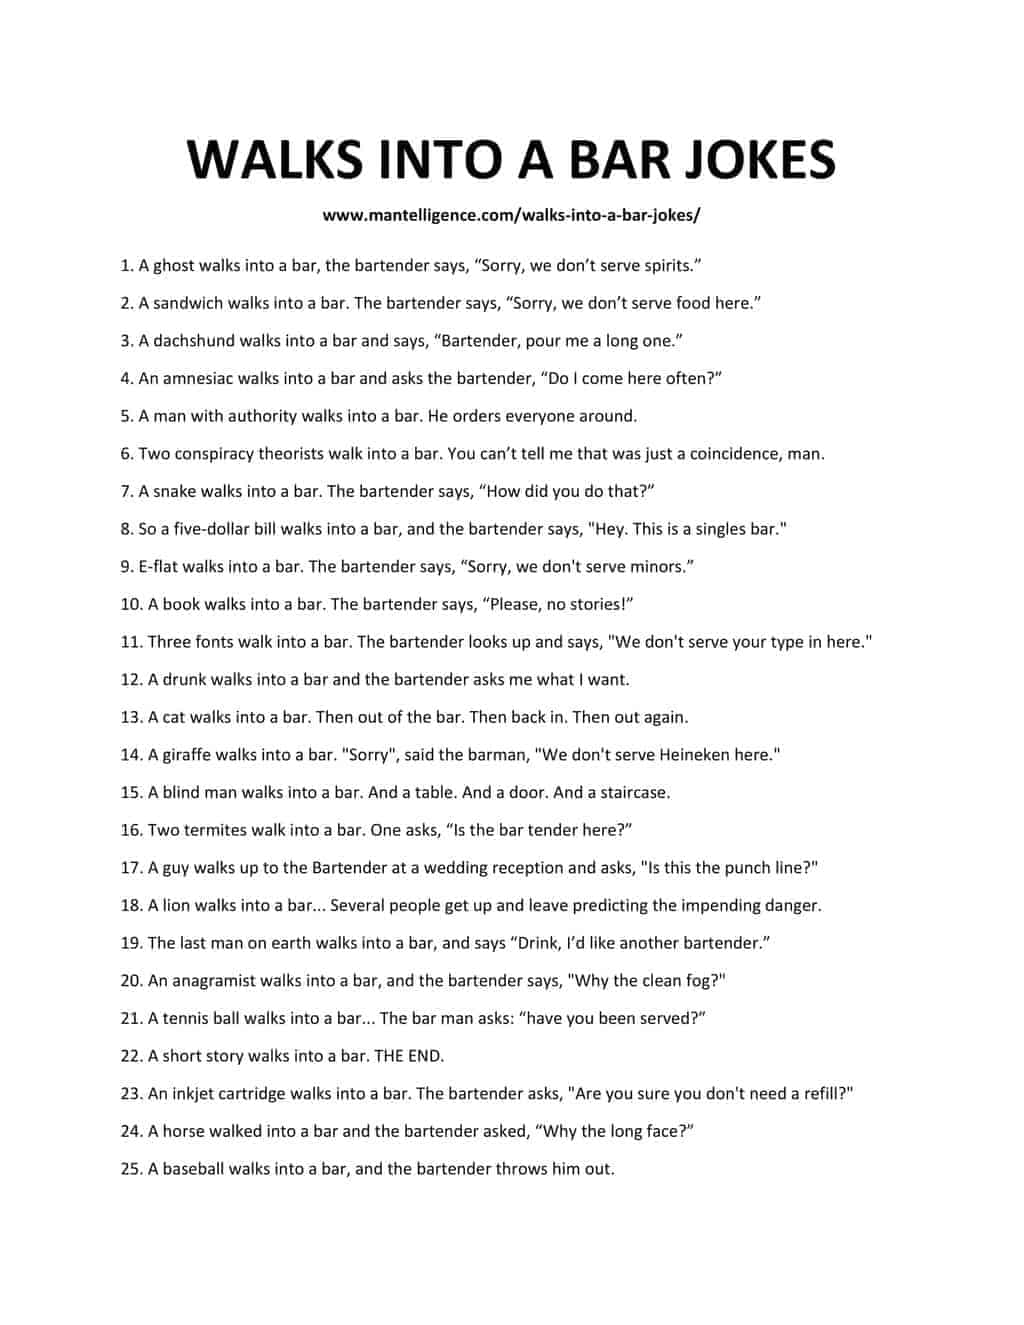 WALKS_INTO_A_BAR_JOKES-1[1]